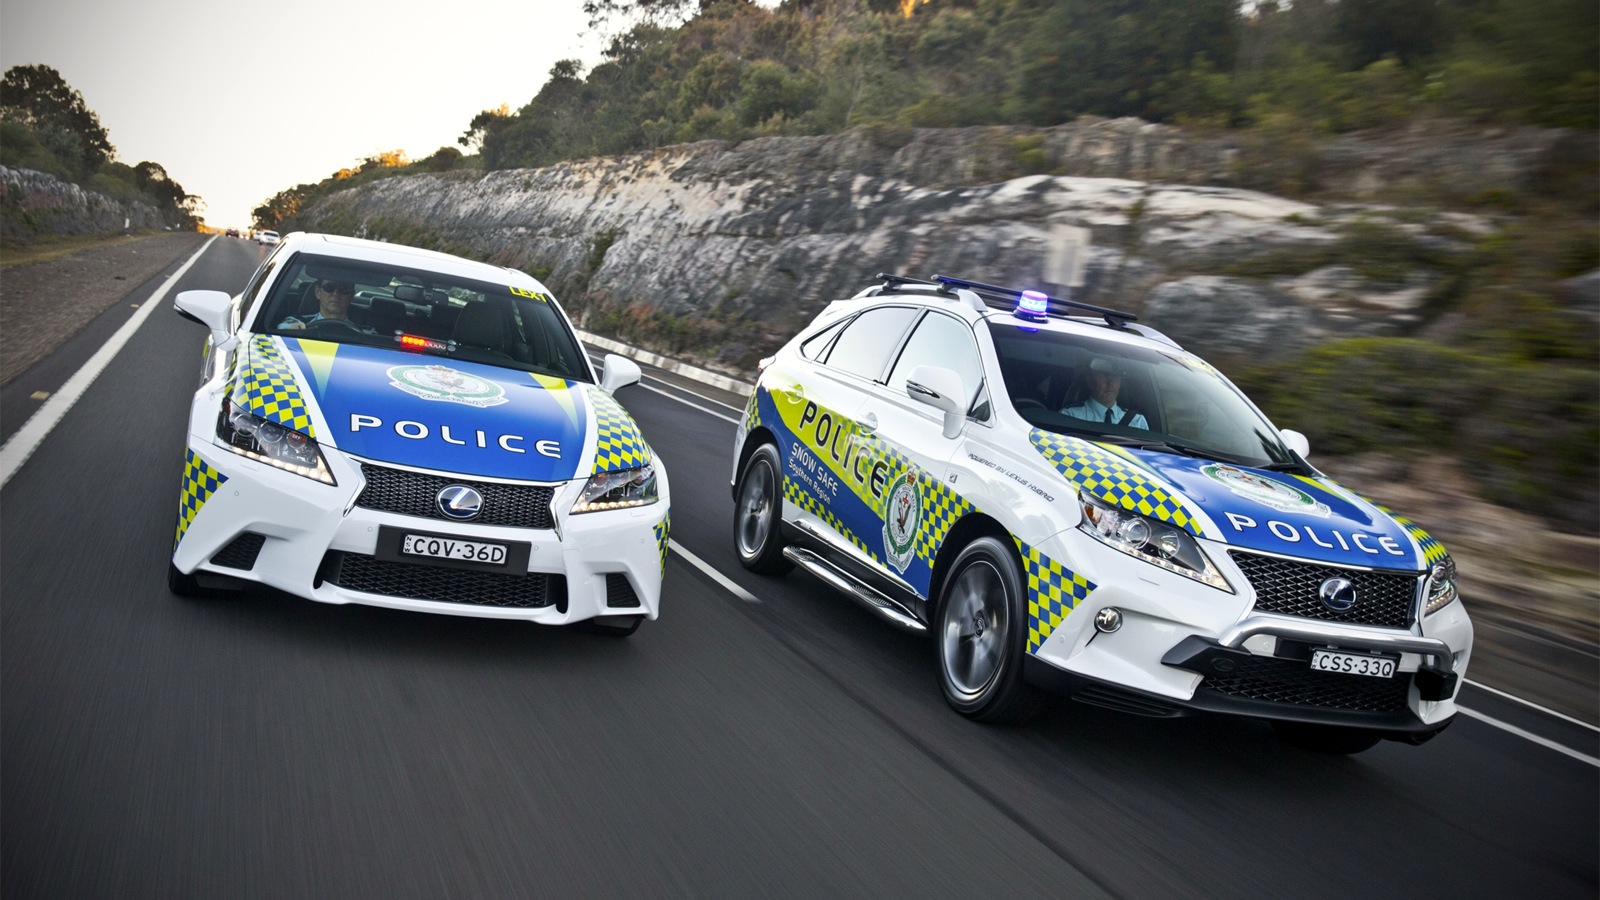 LEXUS AND NSW POLICE